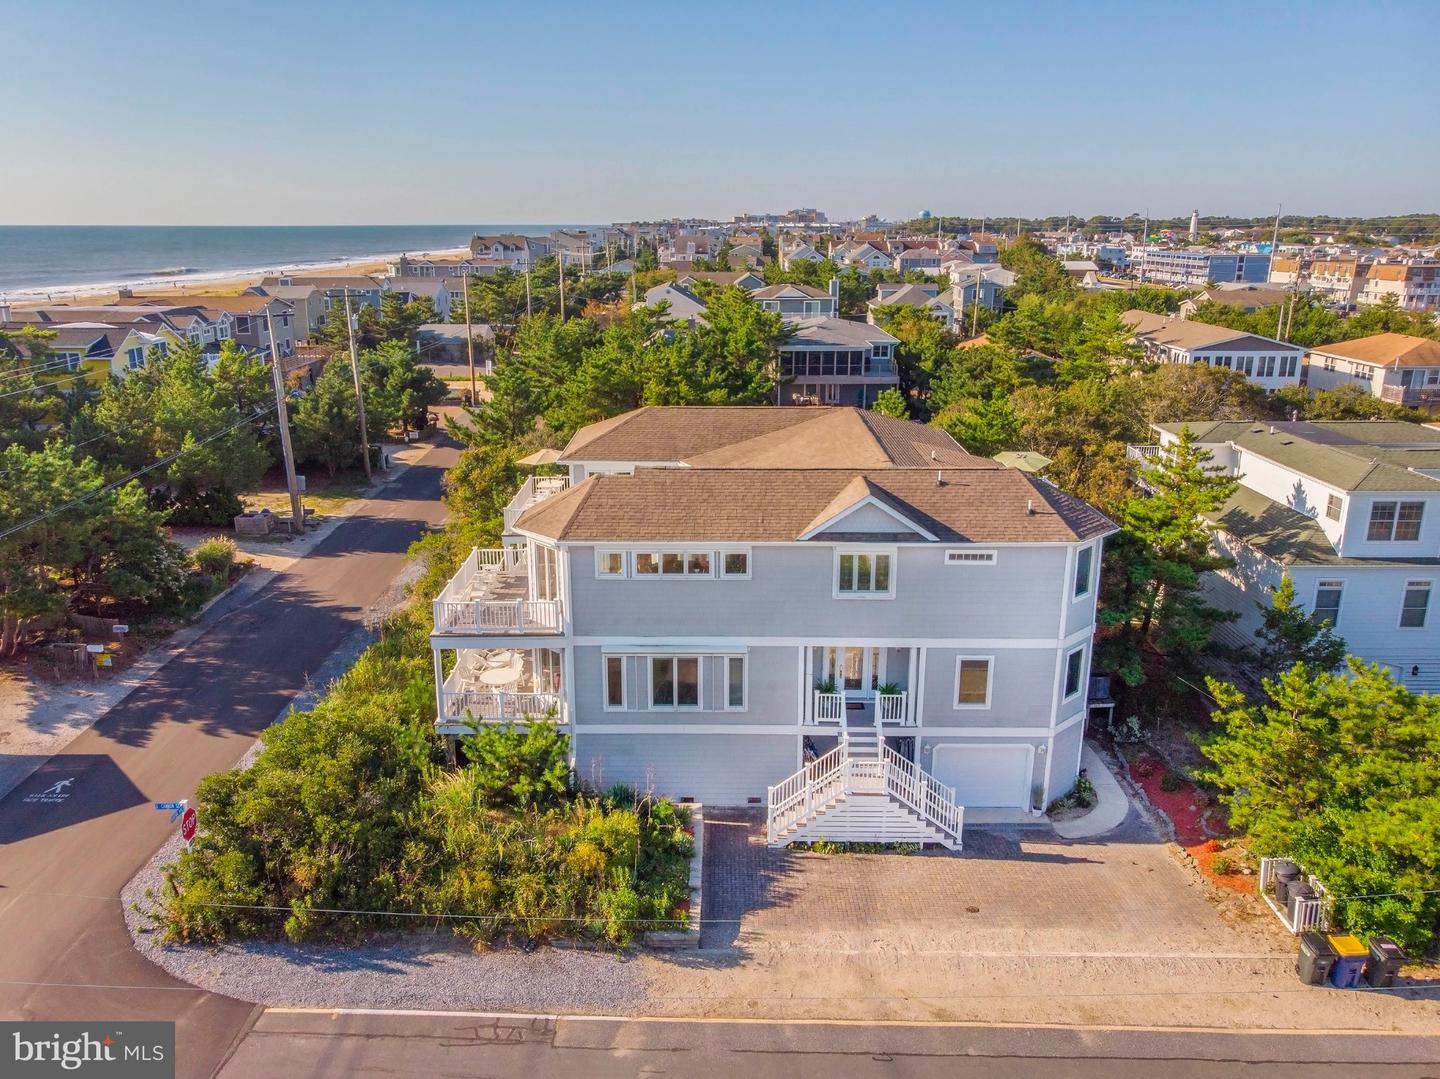 DESU147280-302007867634-2019-08-31-13-42-10 810 Bunting Ave | Fenwick Island, De Real Estate For Sale | MLS# Desu147280  - Suzanne Macnab